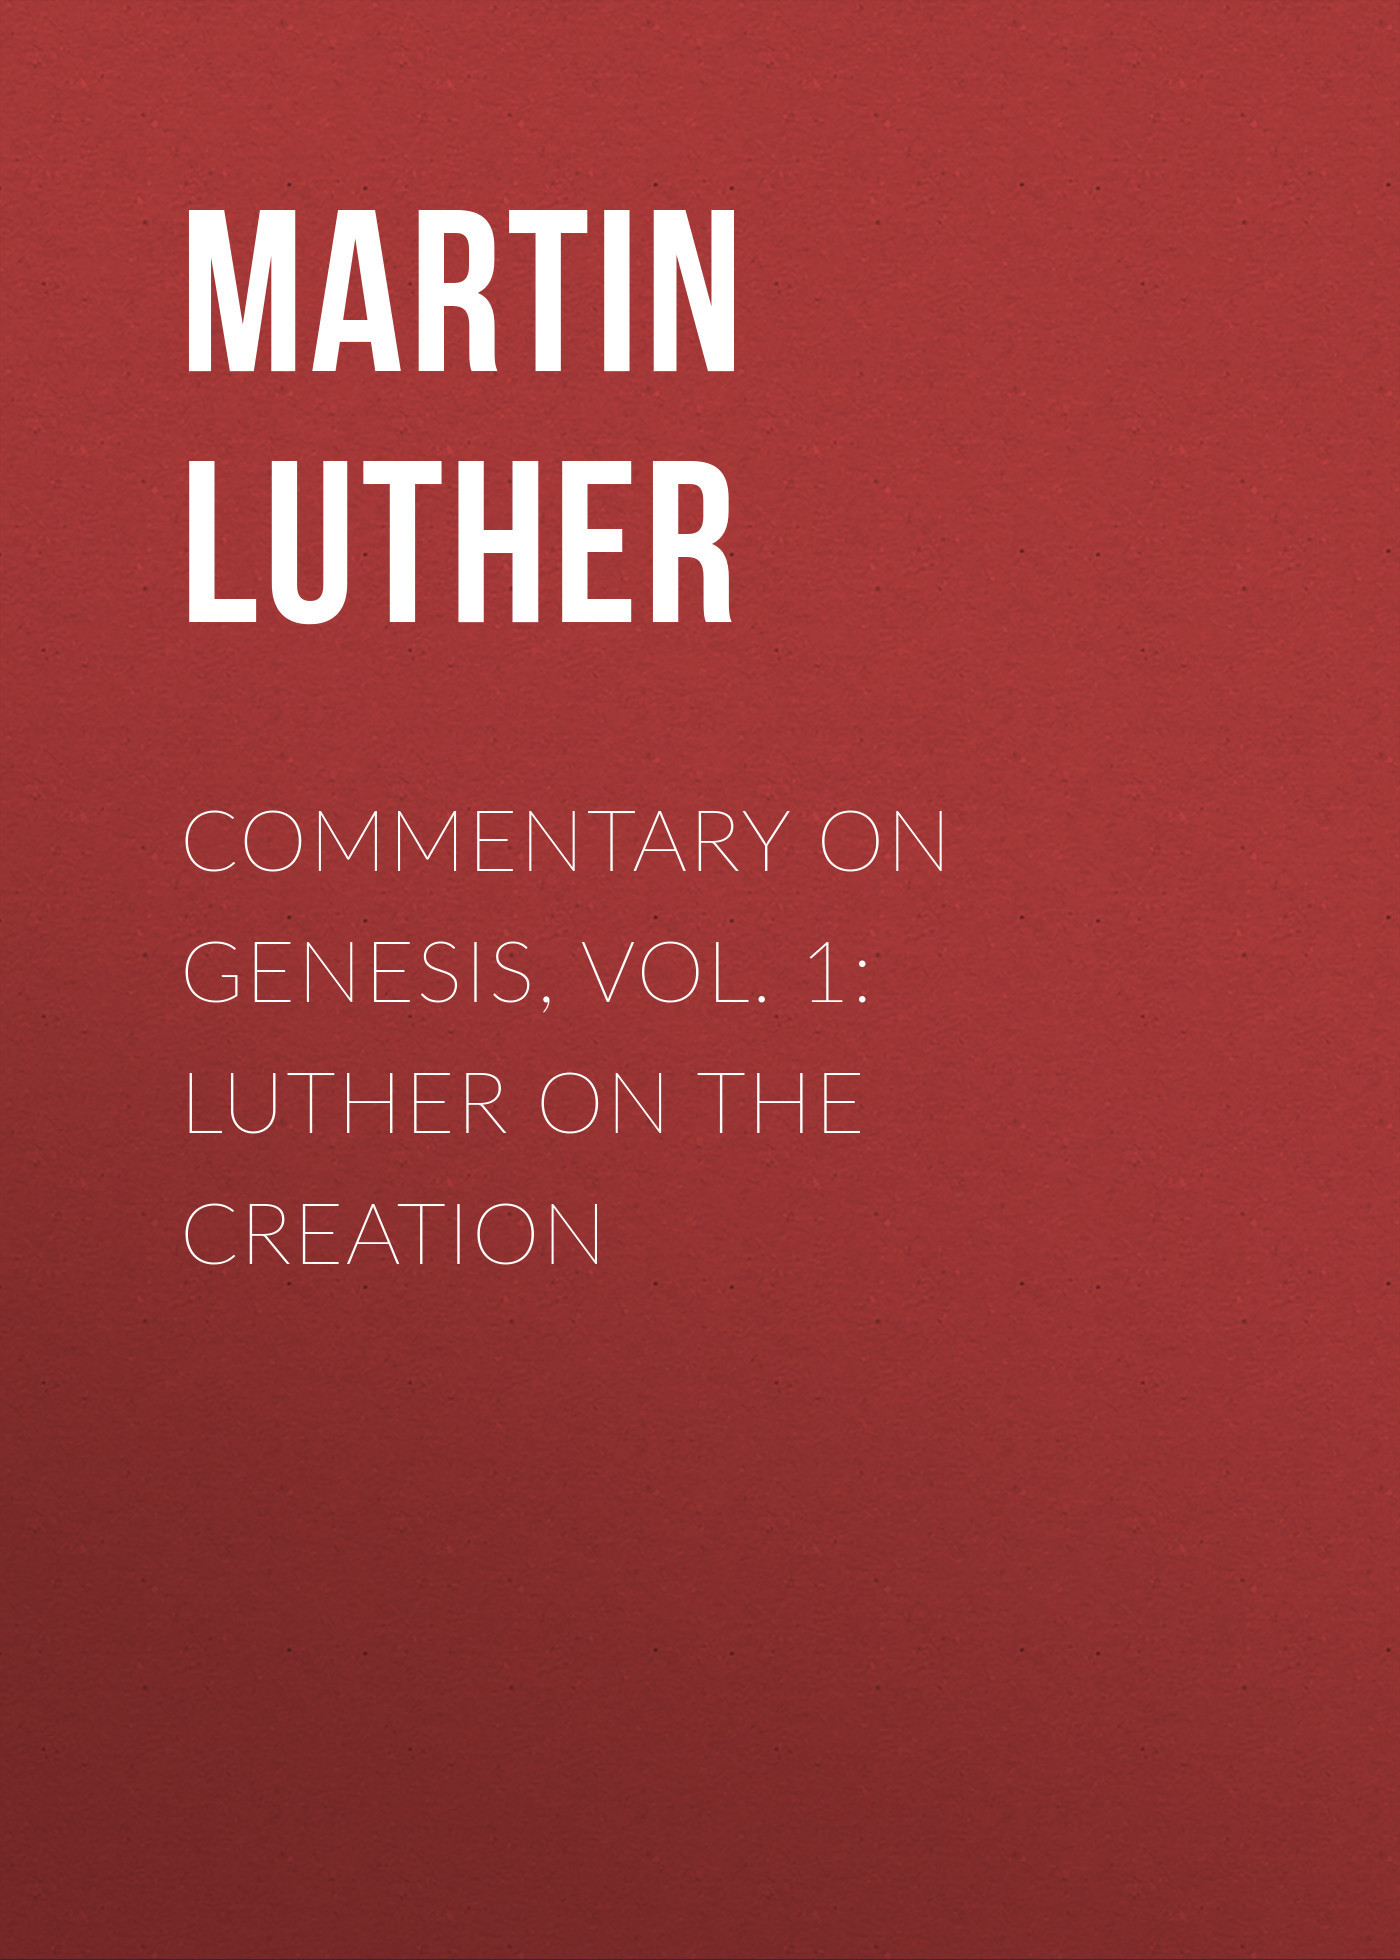 Martin Luther Commentary on Genesis, Vol. 1: Luther on the Creation martin luther dr martin luther s deutsche geistliche lieder